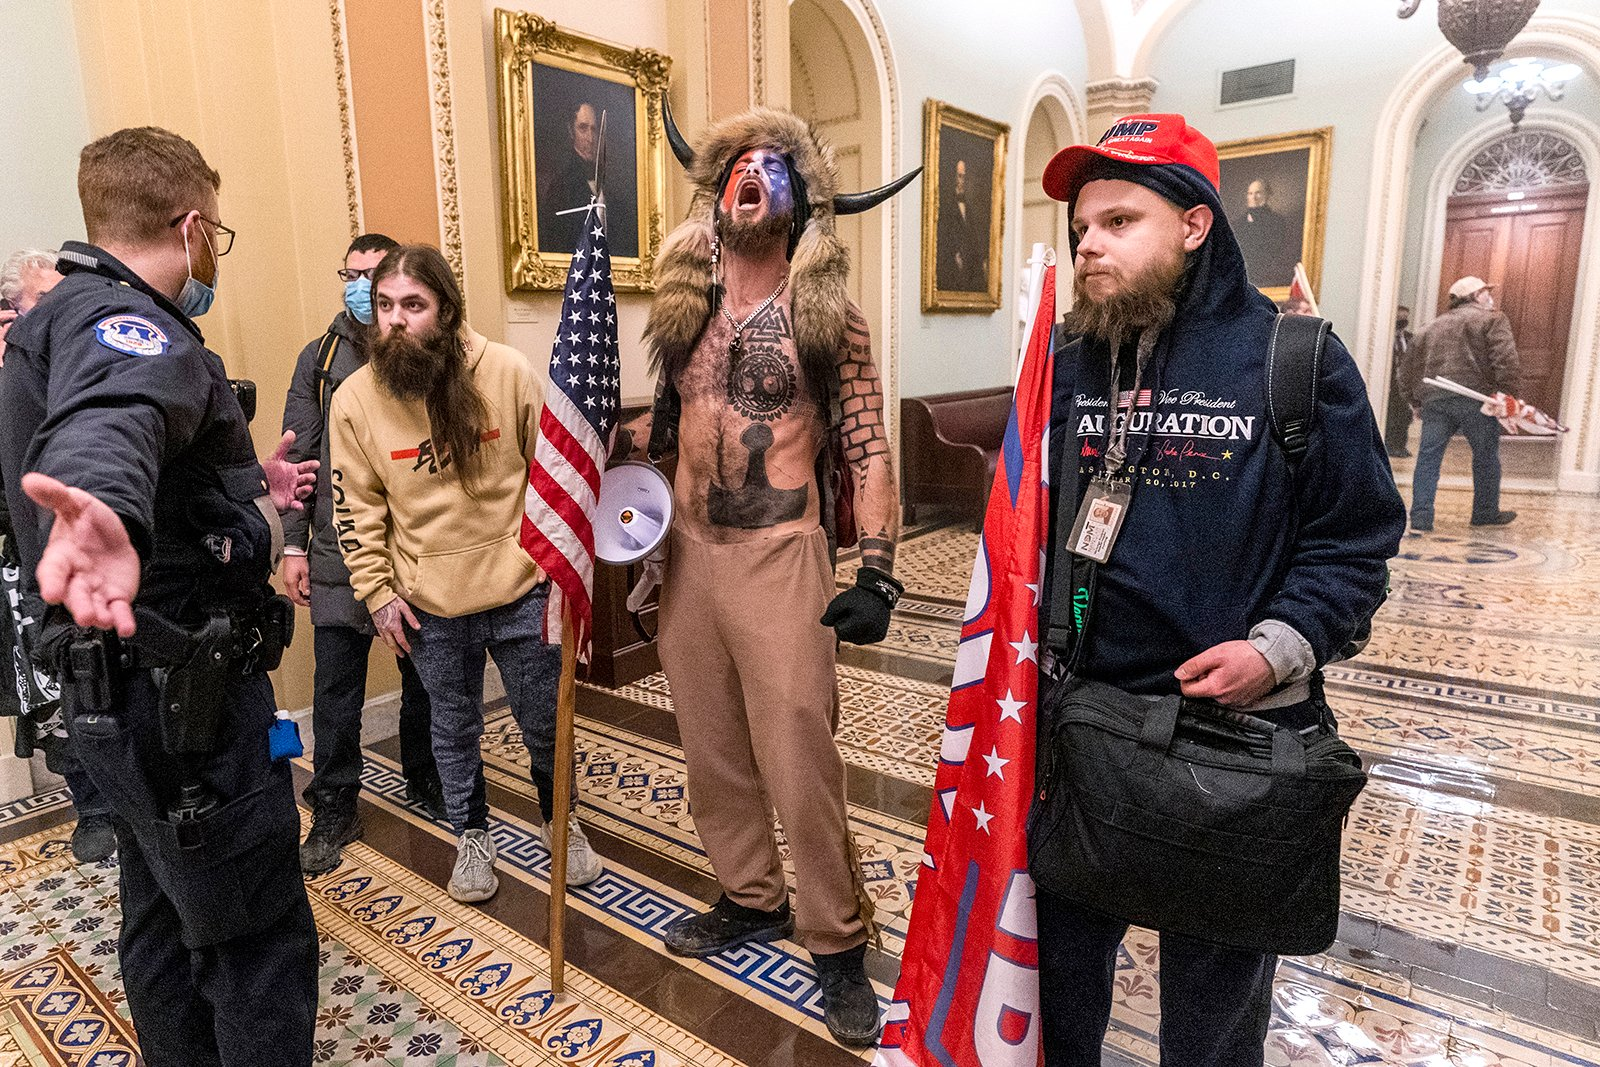 """Jake Angeli, center, better known as the """"QAnon Shaman,"""" and other supporters of President Donald Trump are confronted by Capitol Police officers outside the Senate Chamber inside the Capitol, Jan. 6, 2021, in Washington. (AP Photo/Manuel Balce Ceneta)"""